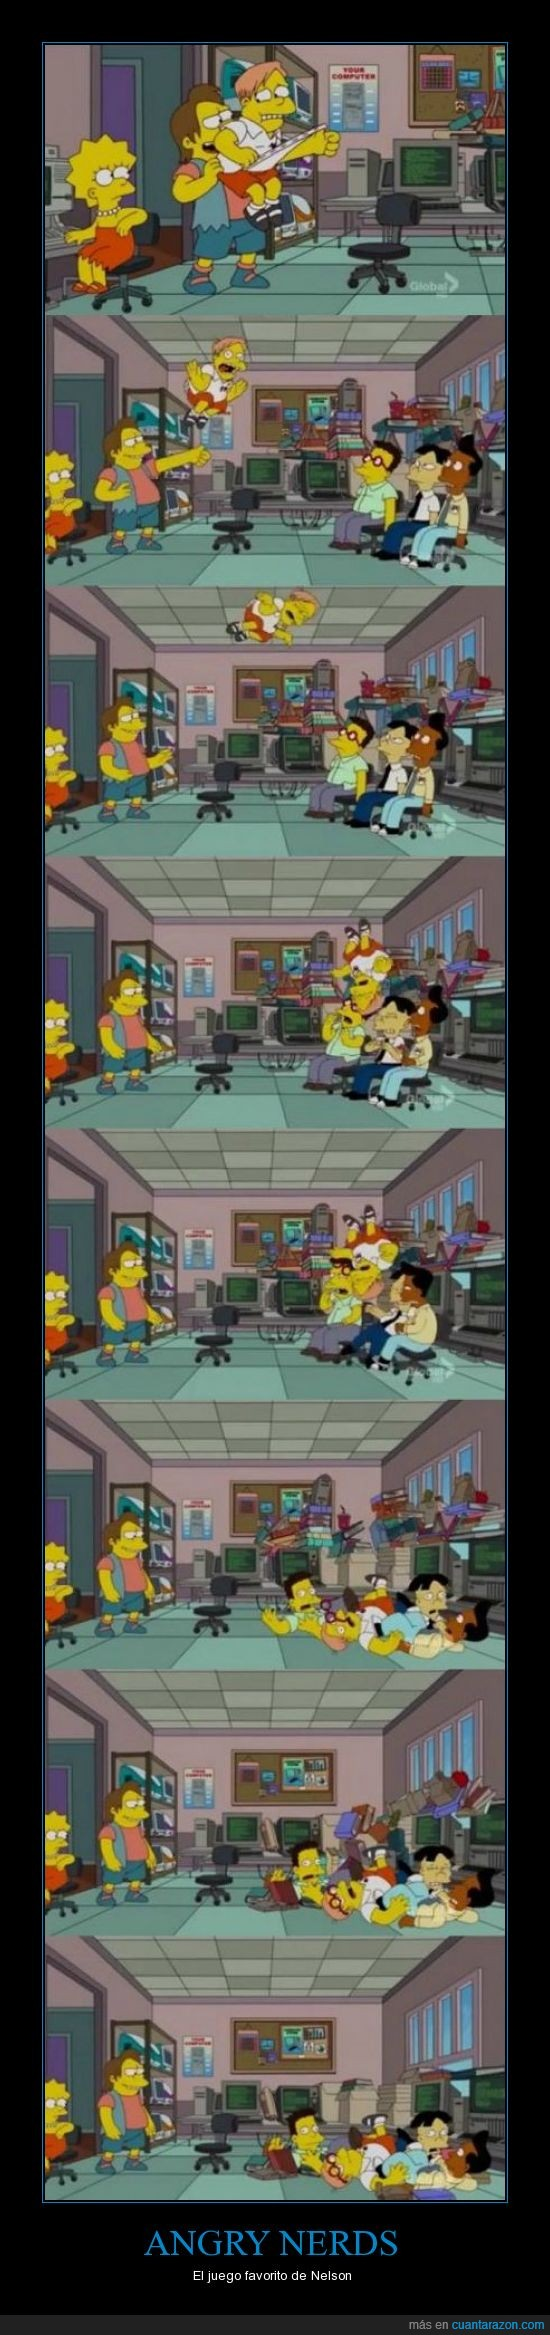 angry birds,Angry Nerds,empollon,juego,Los Simpson,martin,Nelson